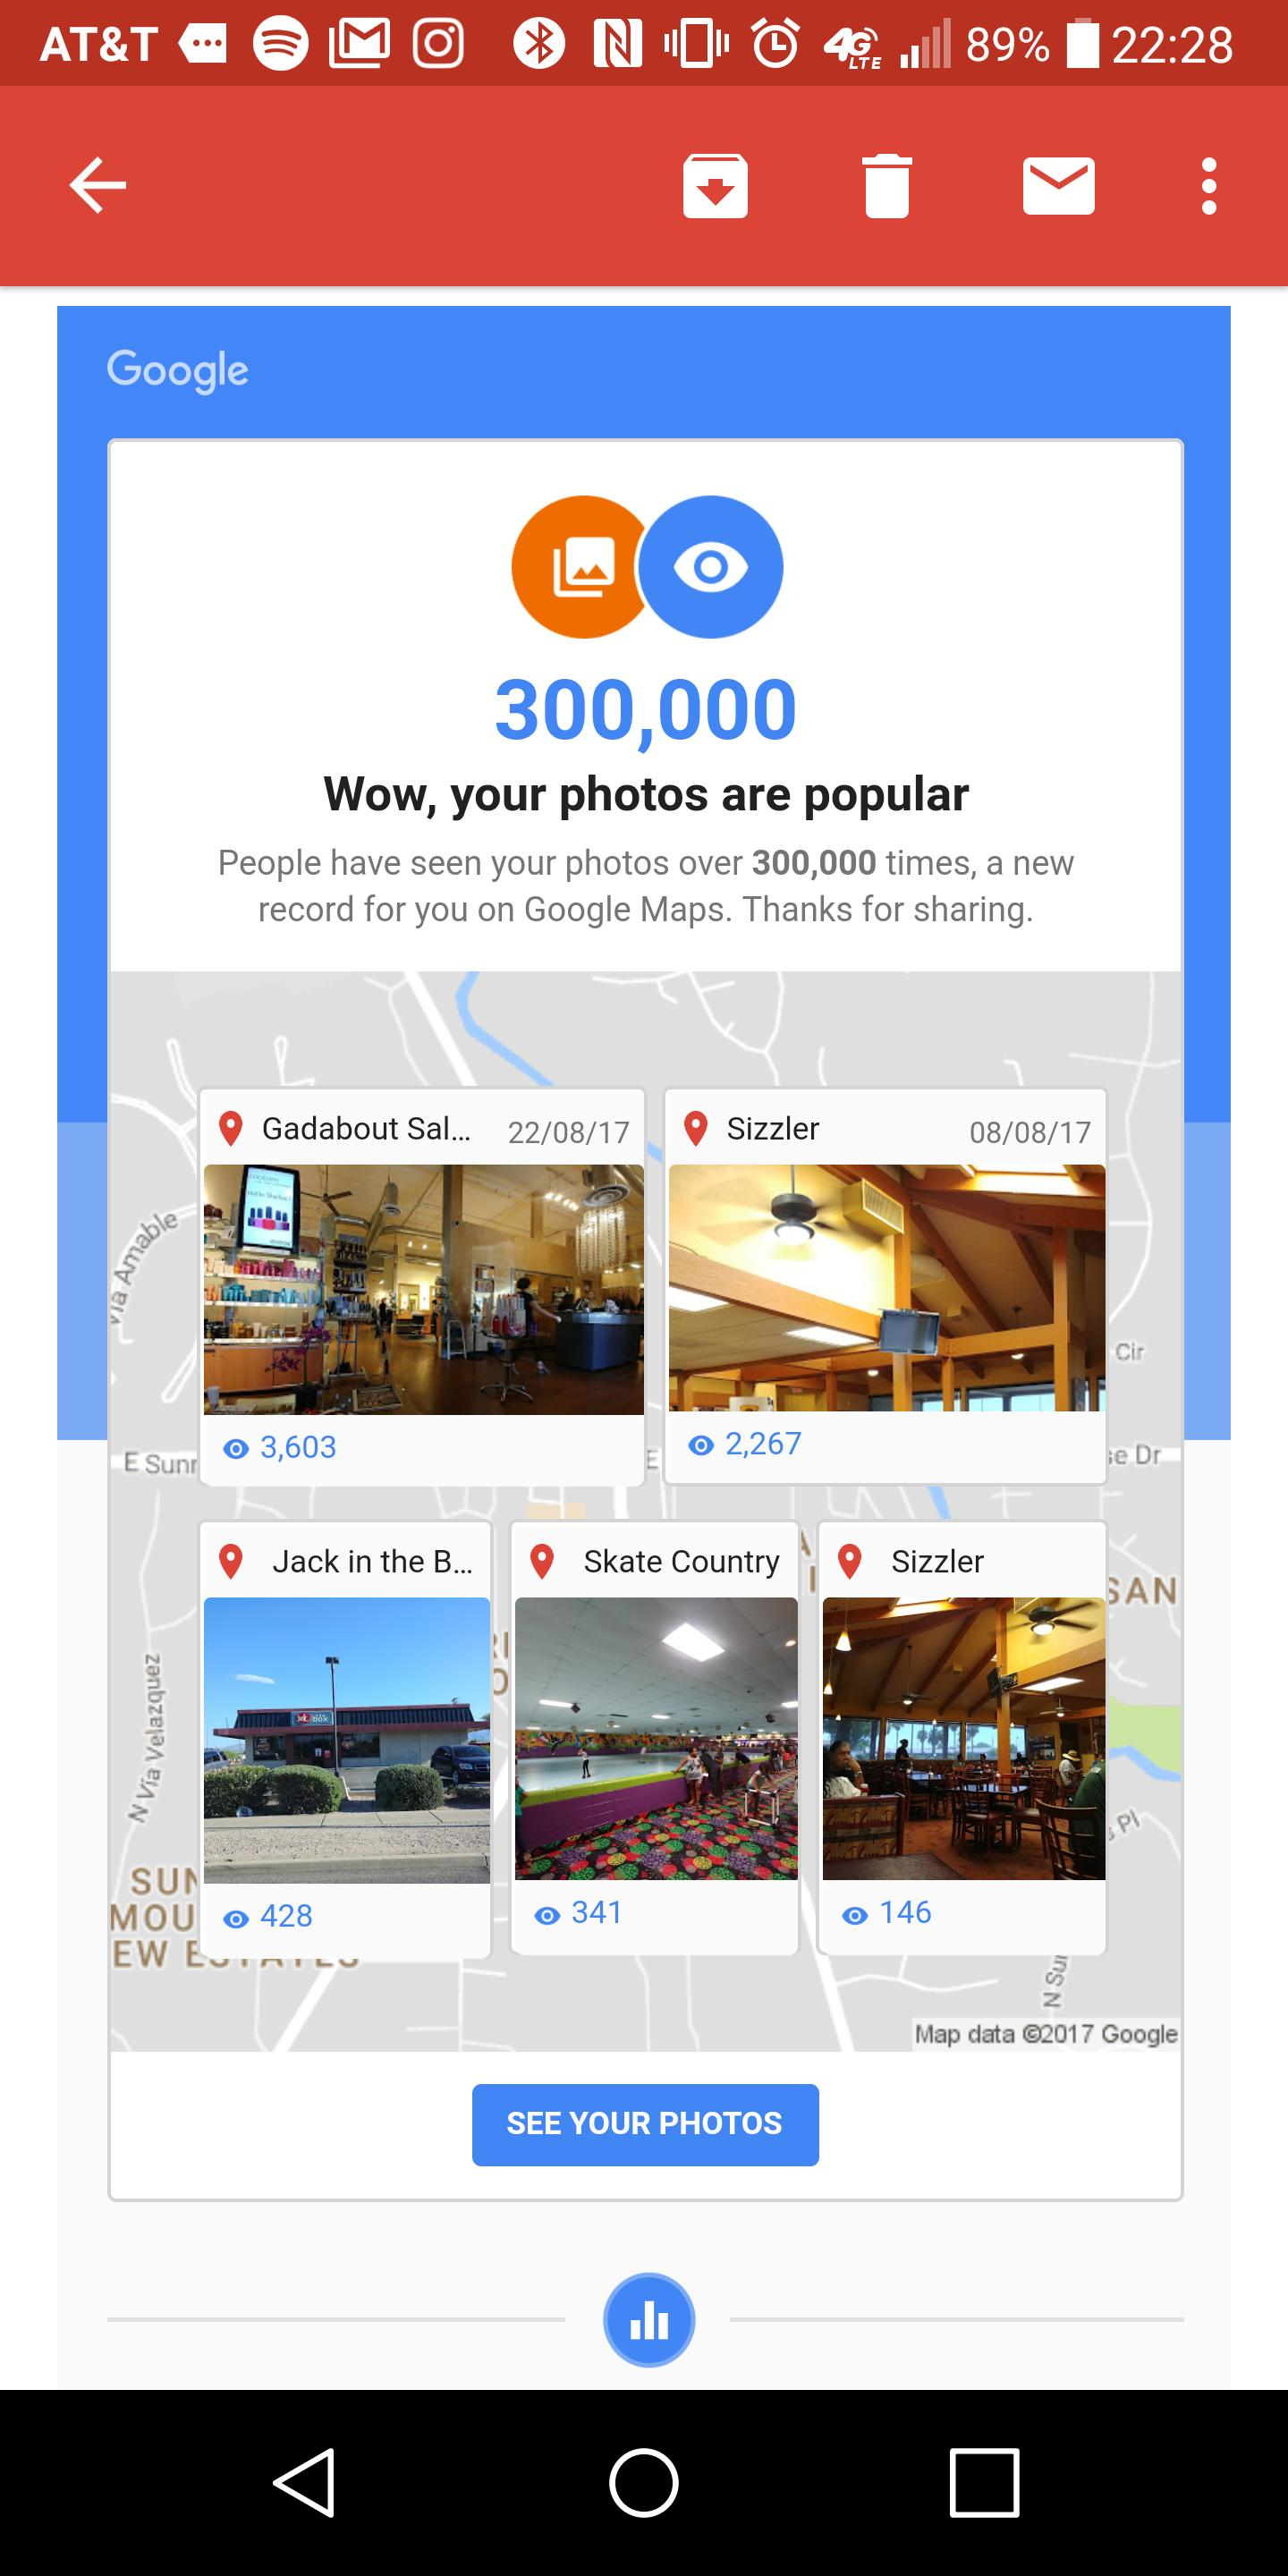 [Image] Whenever I feel insignificant, I look at how many people I've helped with pictures for Google maps